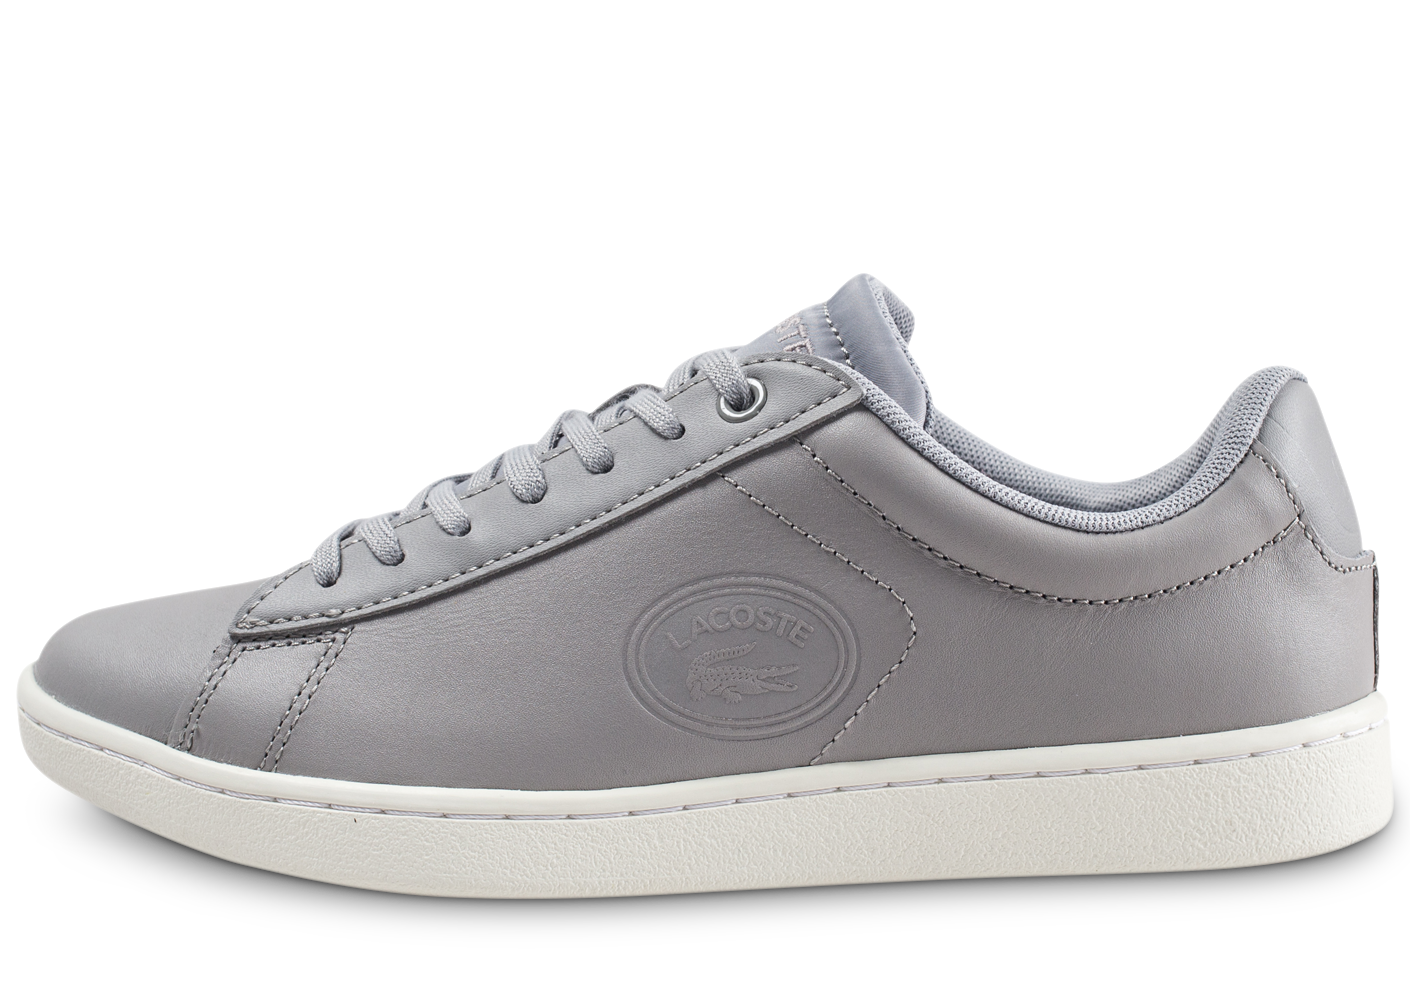 Lacoste Carnaby Evo Grise Et Blanche Femme Baskets